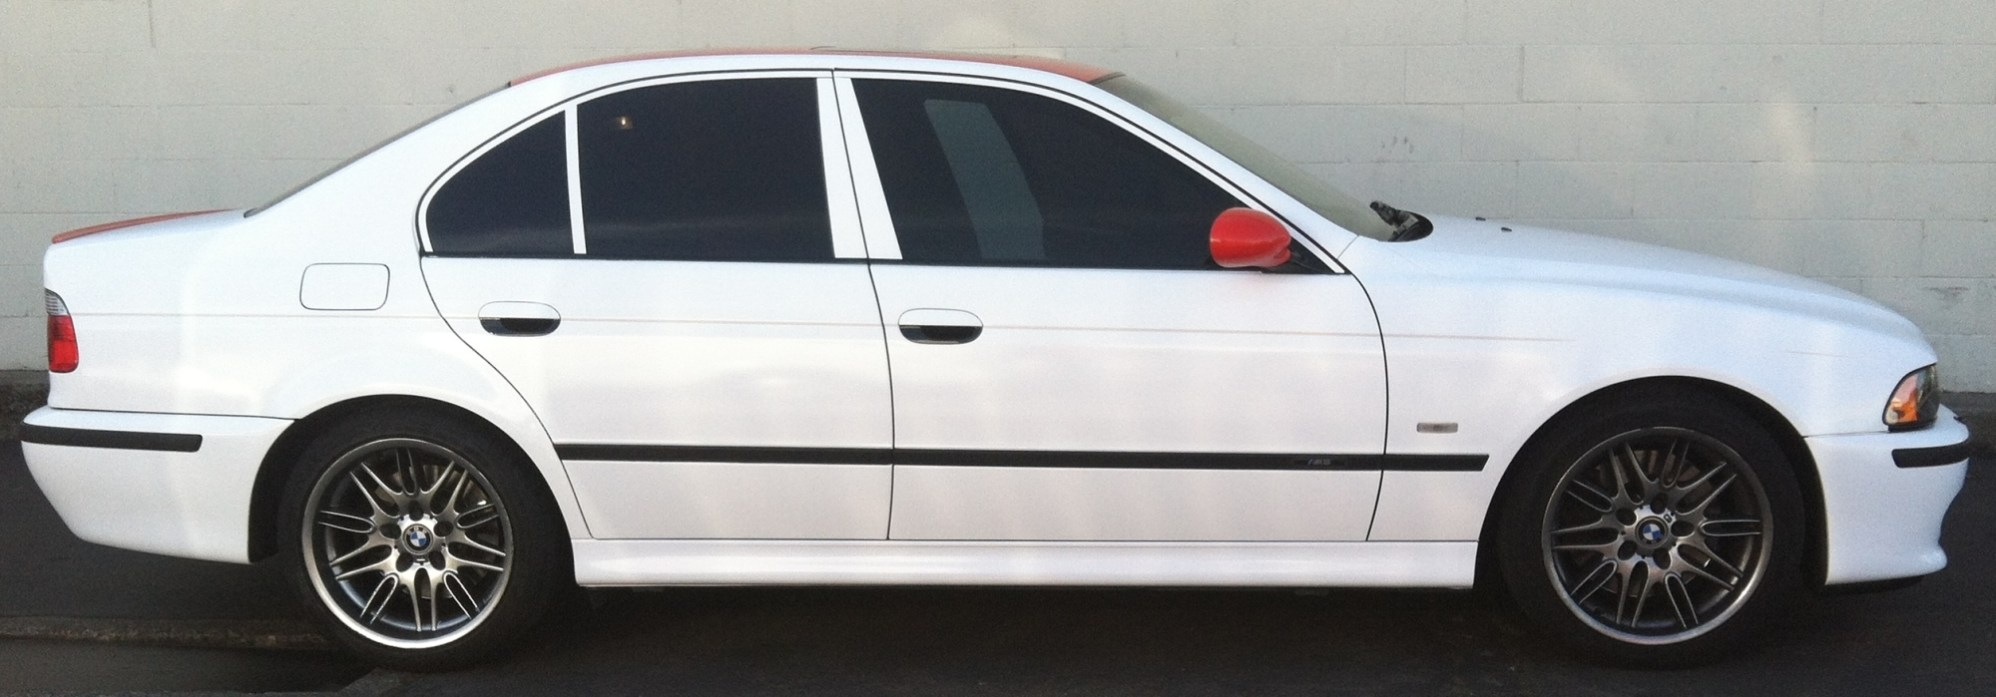 bmw white red roof color change-02